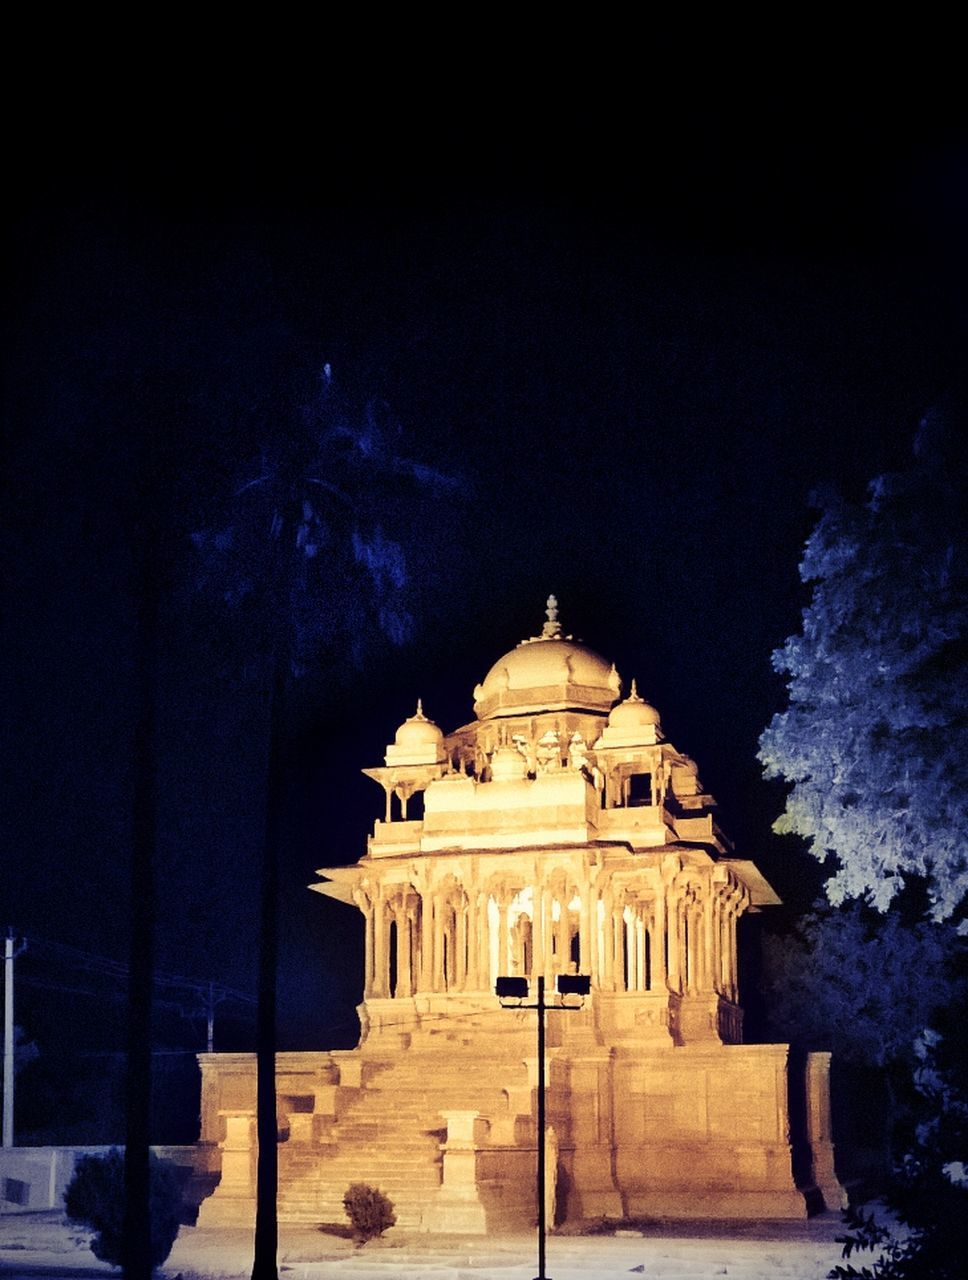 night, illuminated, history, built structure, architecture, travel destinations, building exterior, no people, outdoors, tree, architectural column, statue, sky, nature, ancient civilization